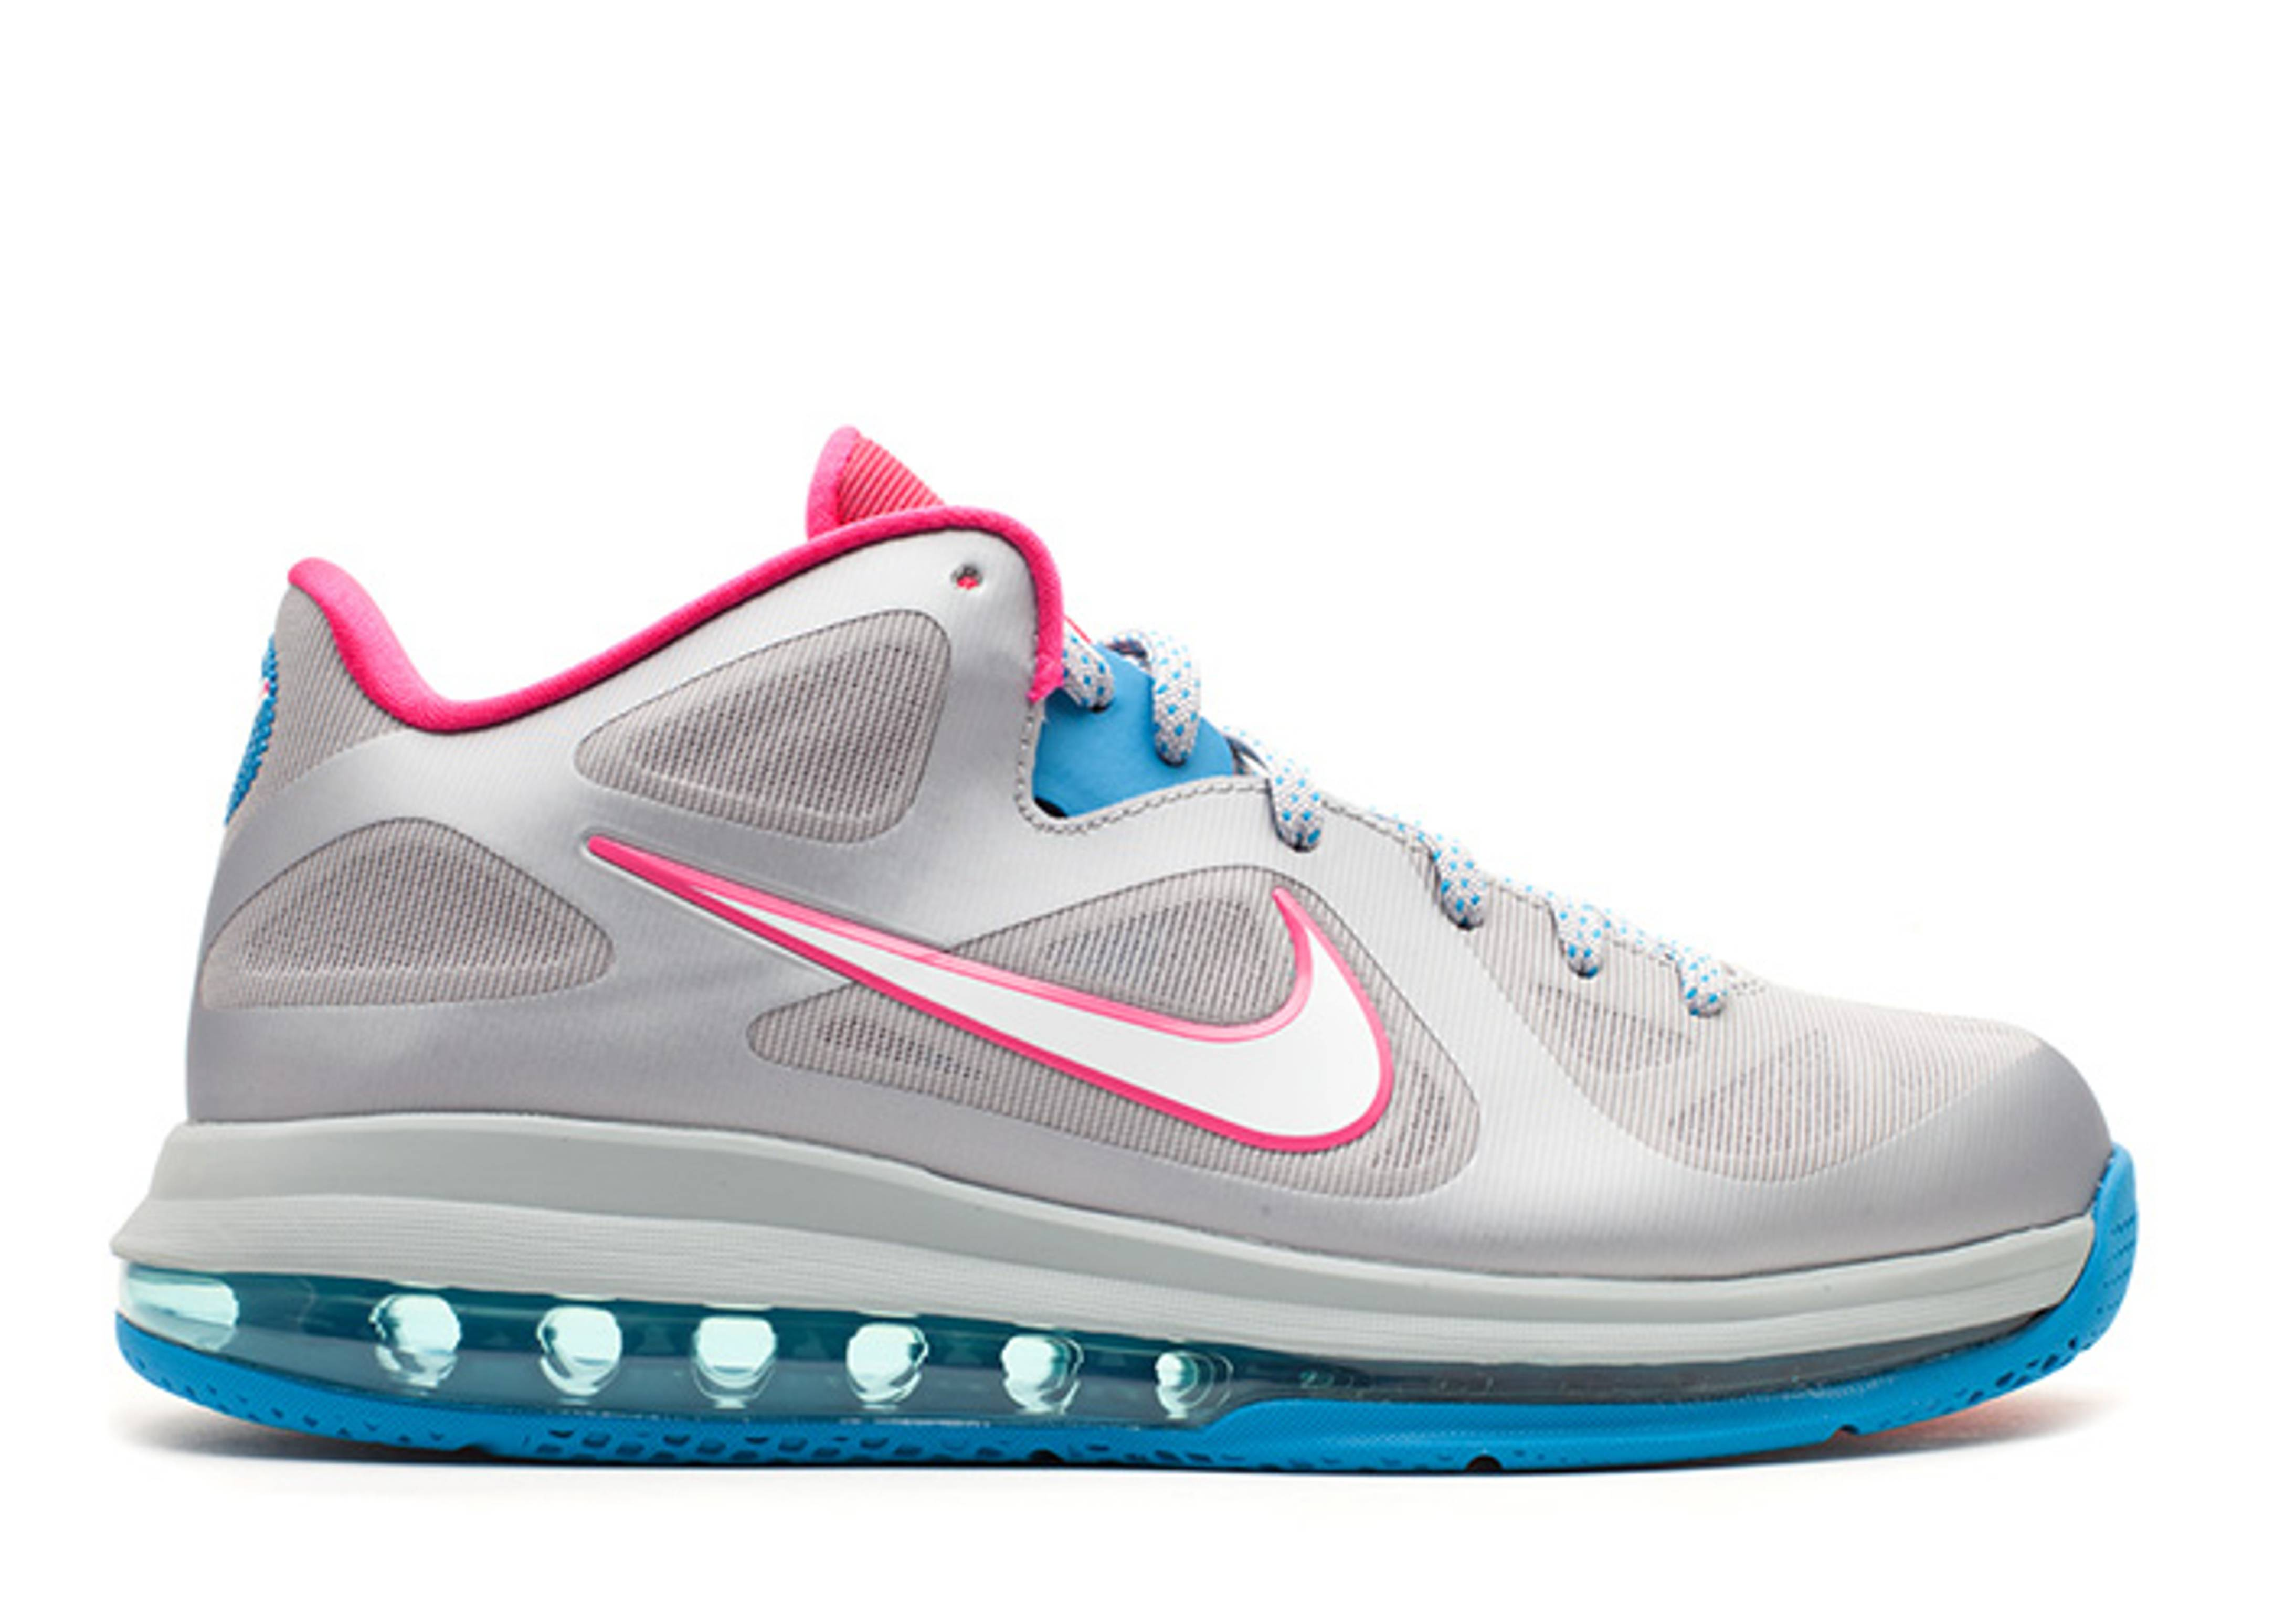 new style 544c2 1a095 lebron 9 low